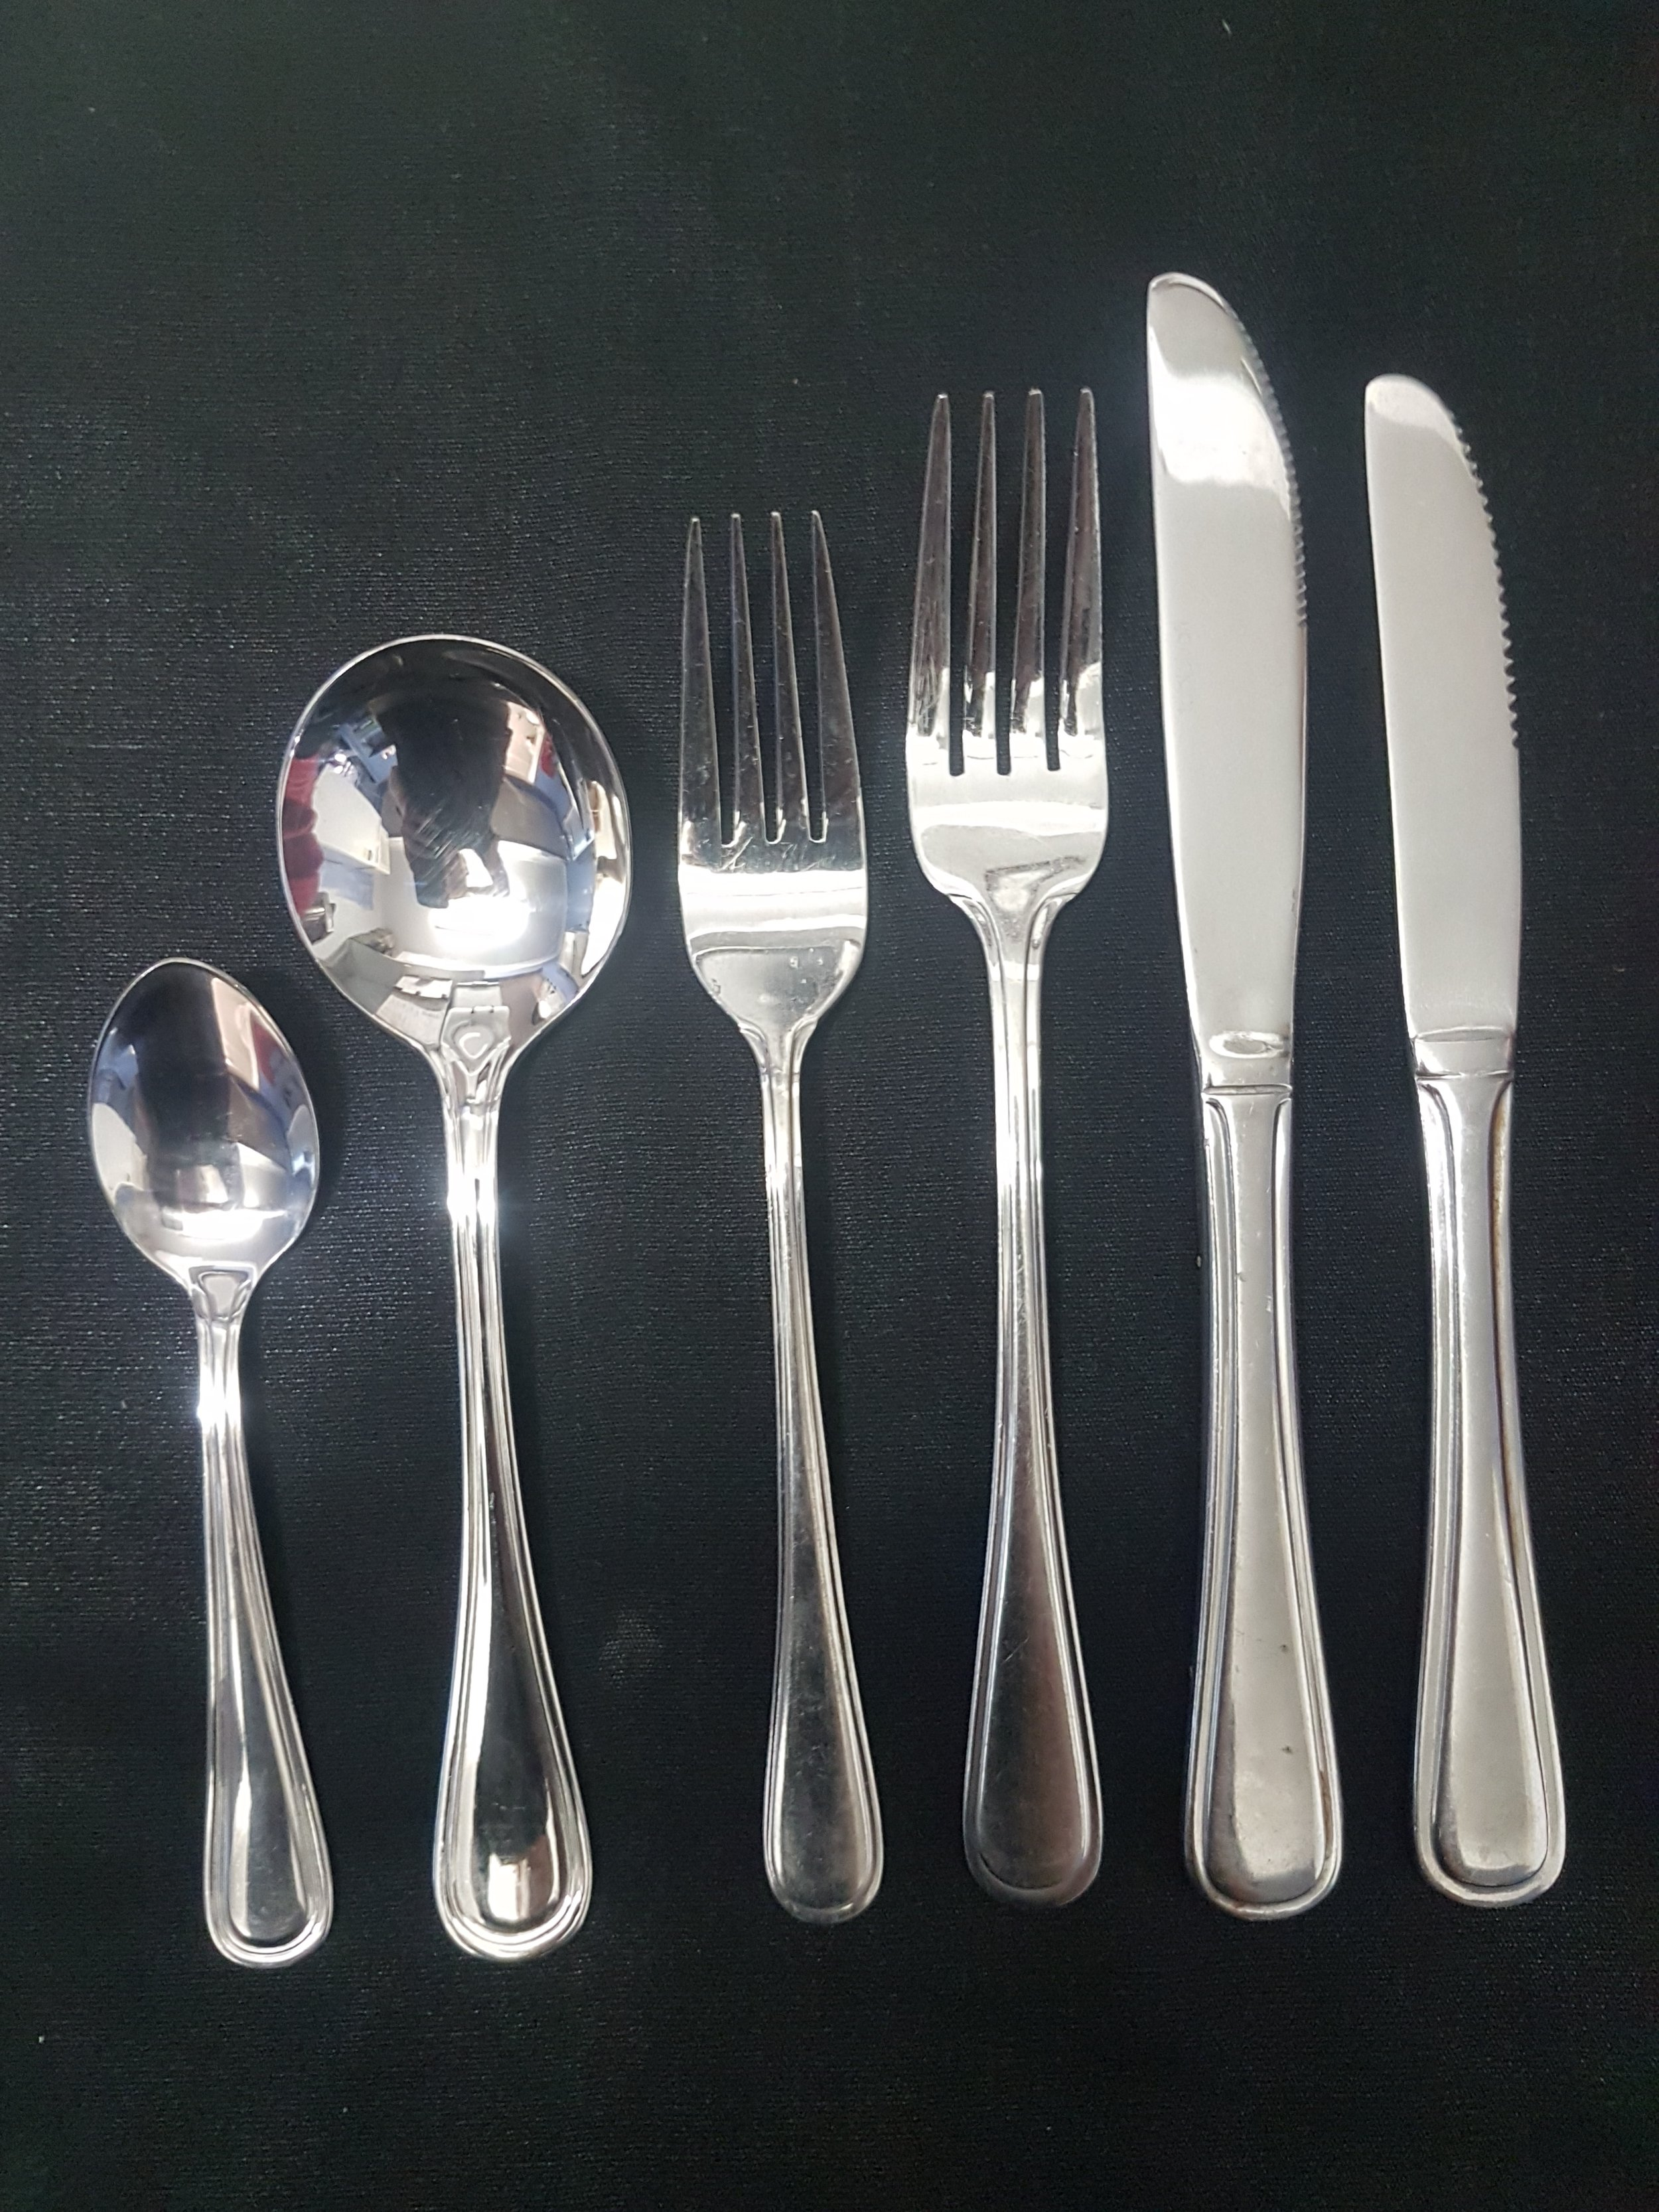 stainless steel range - Rounded edge stainless steel cutlery.Teaspoon .39c eaSoup spoon .44c eaEntree fork .44c eaDinner fork .44c eaDinner knife .44c eaEntree knife .44c ea